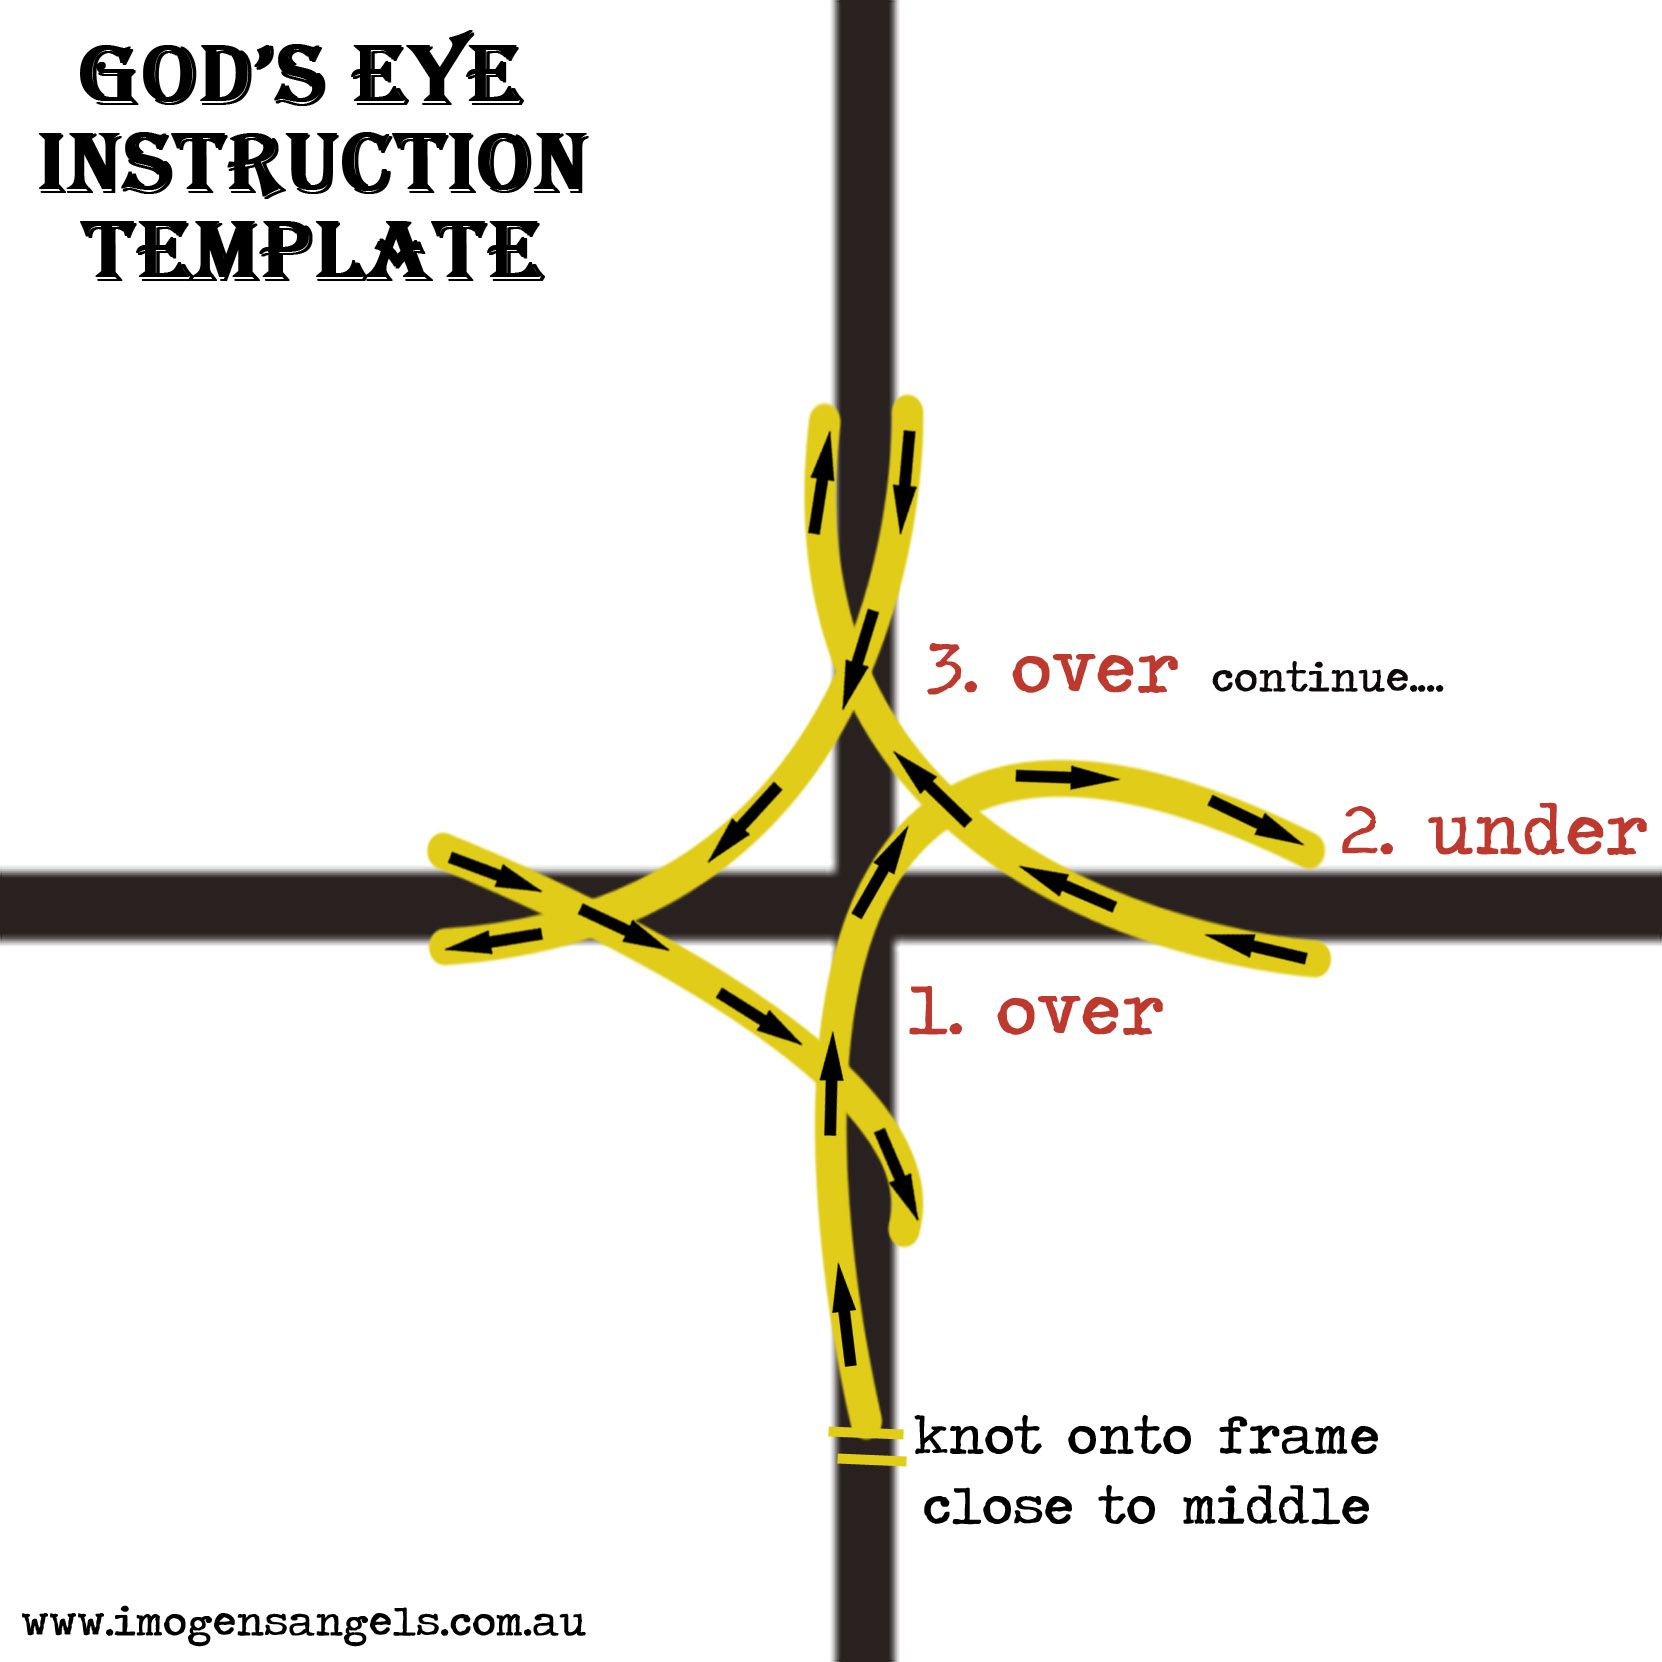 photo relating to God's Eye Printable Instructions named Gods Eye Craft Guidelines - 12 months of Refreshing Drinking water